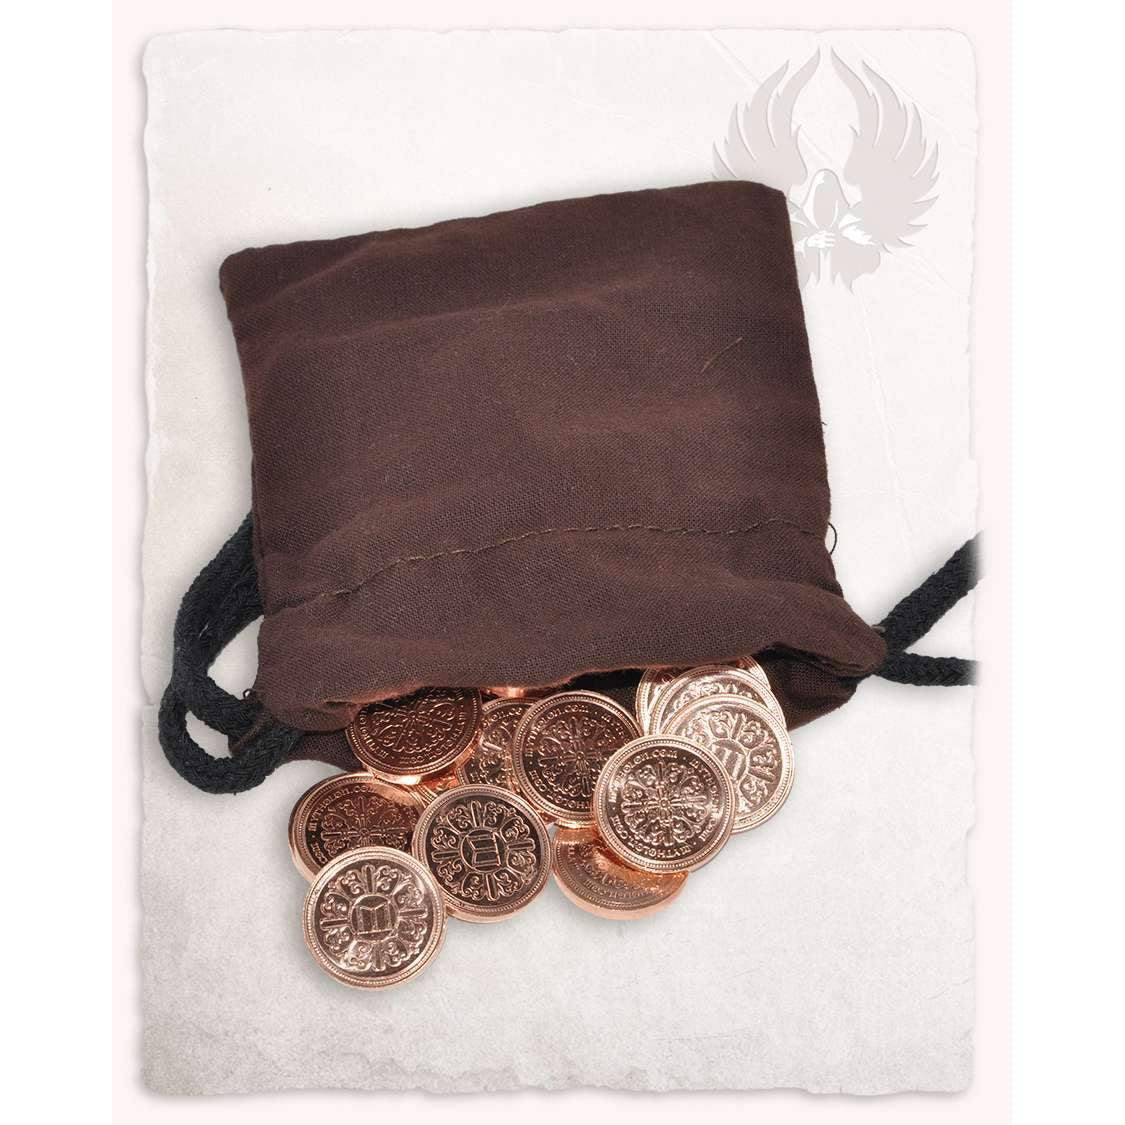 50 larp coins copper with fabric bag